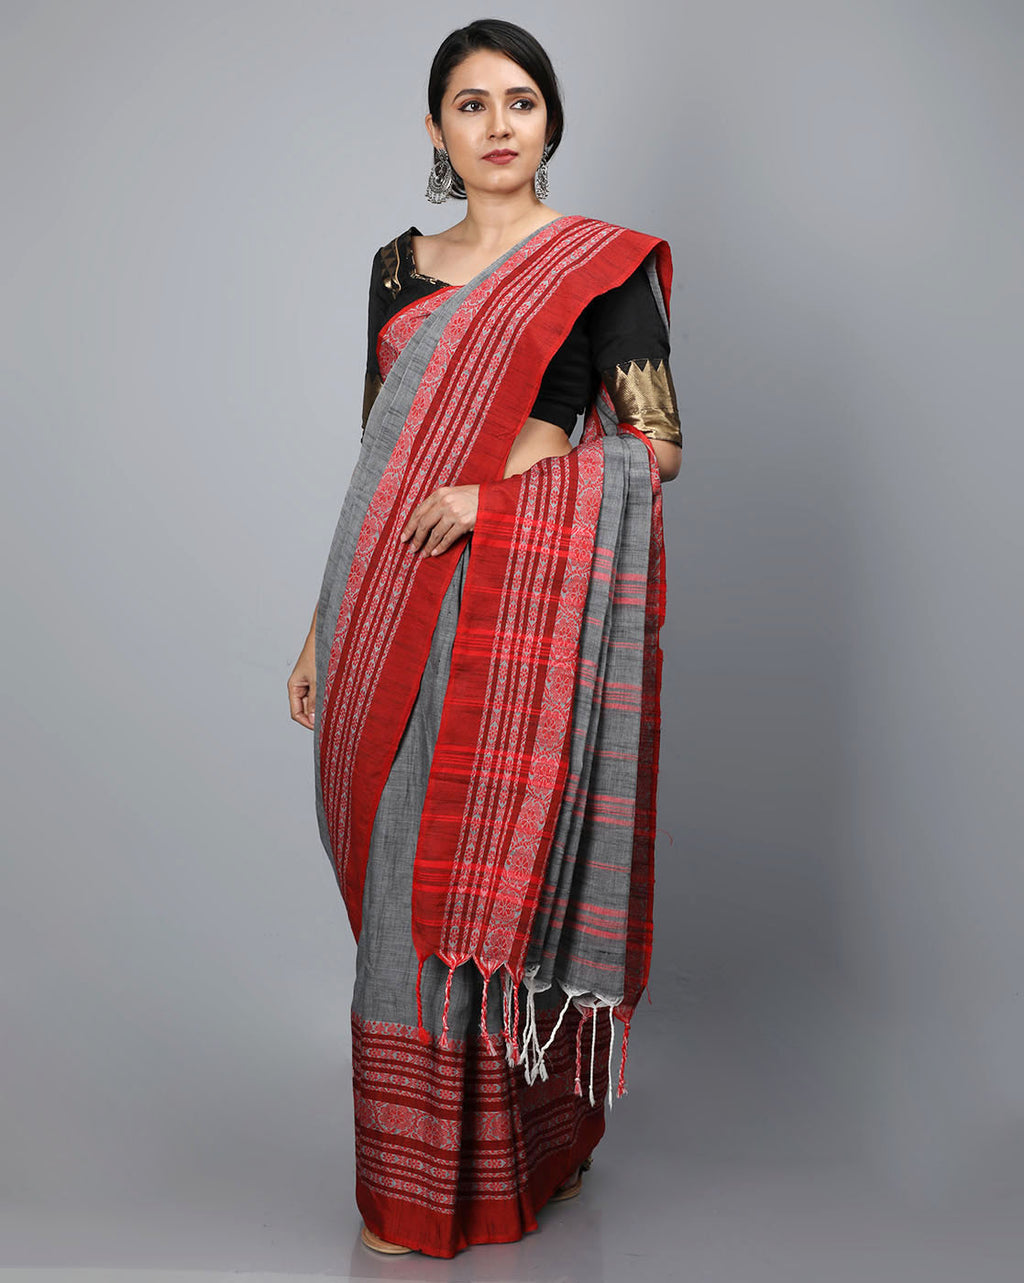 Phulia Cotton Saree with Thick and Thin Floral Border - Charcoal Grey/Red